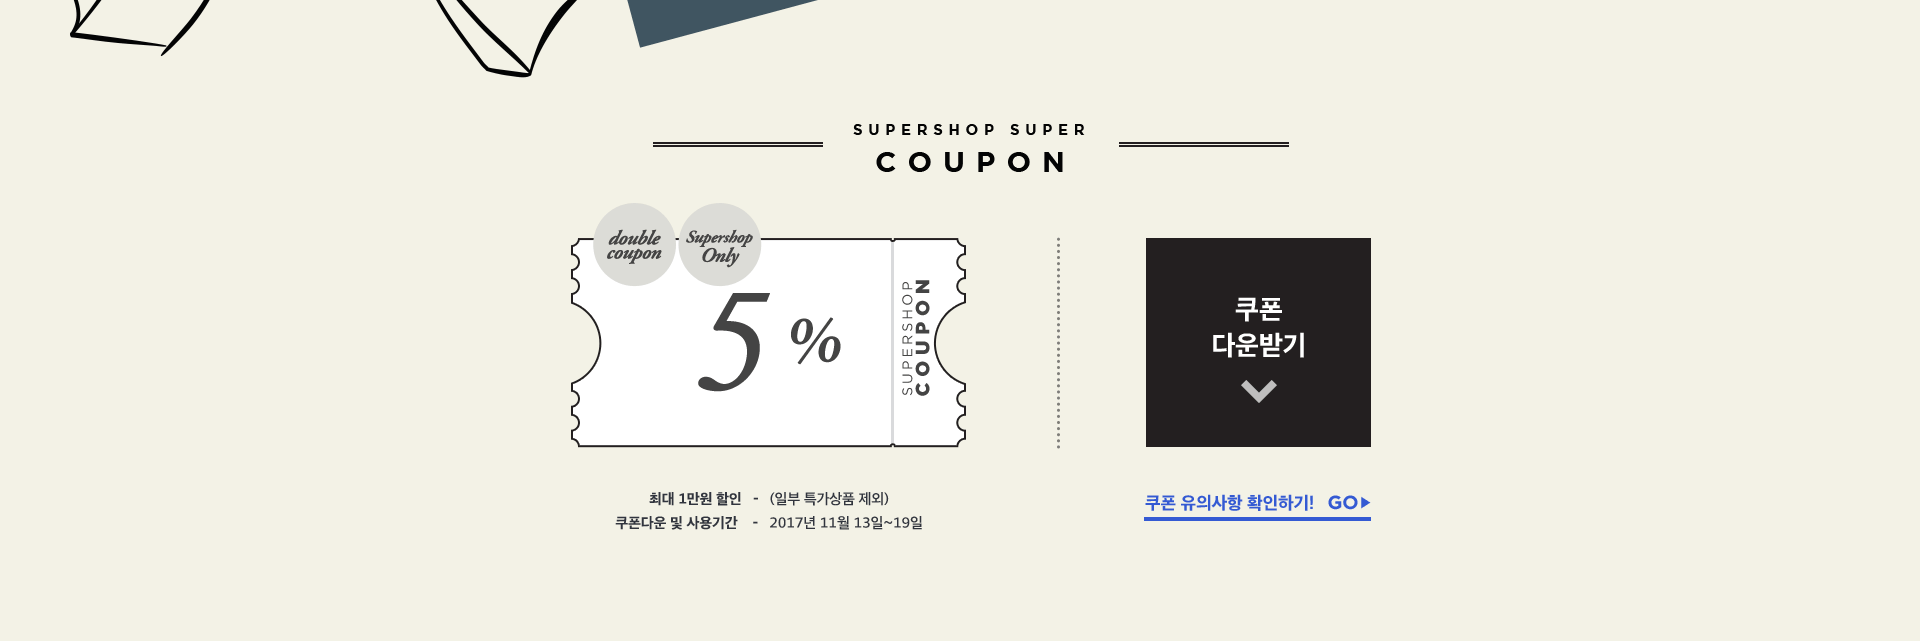 SUPERSHOP SUPER COUPON